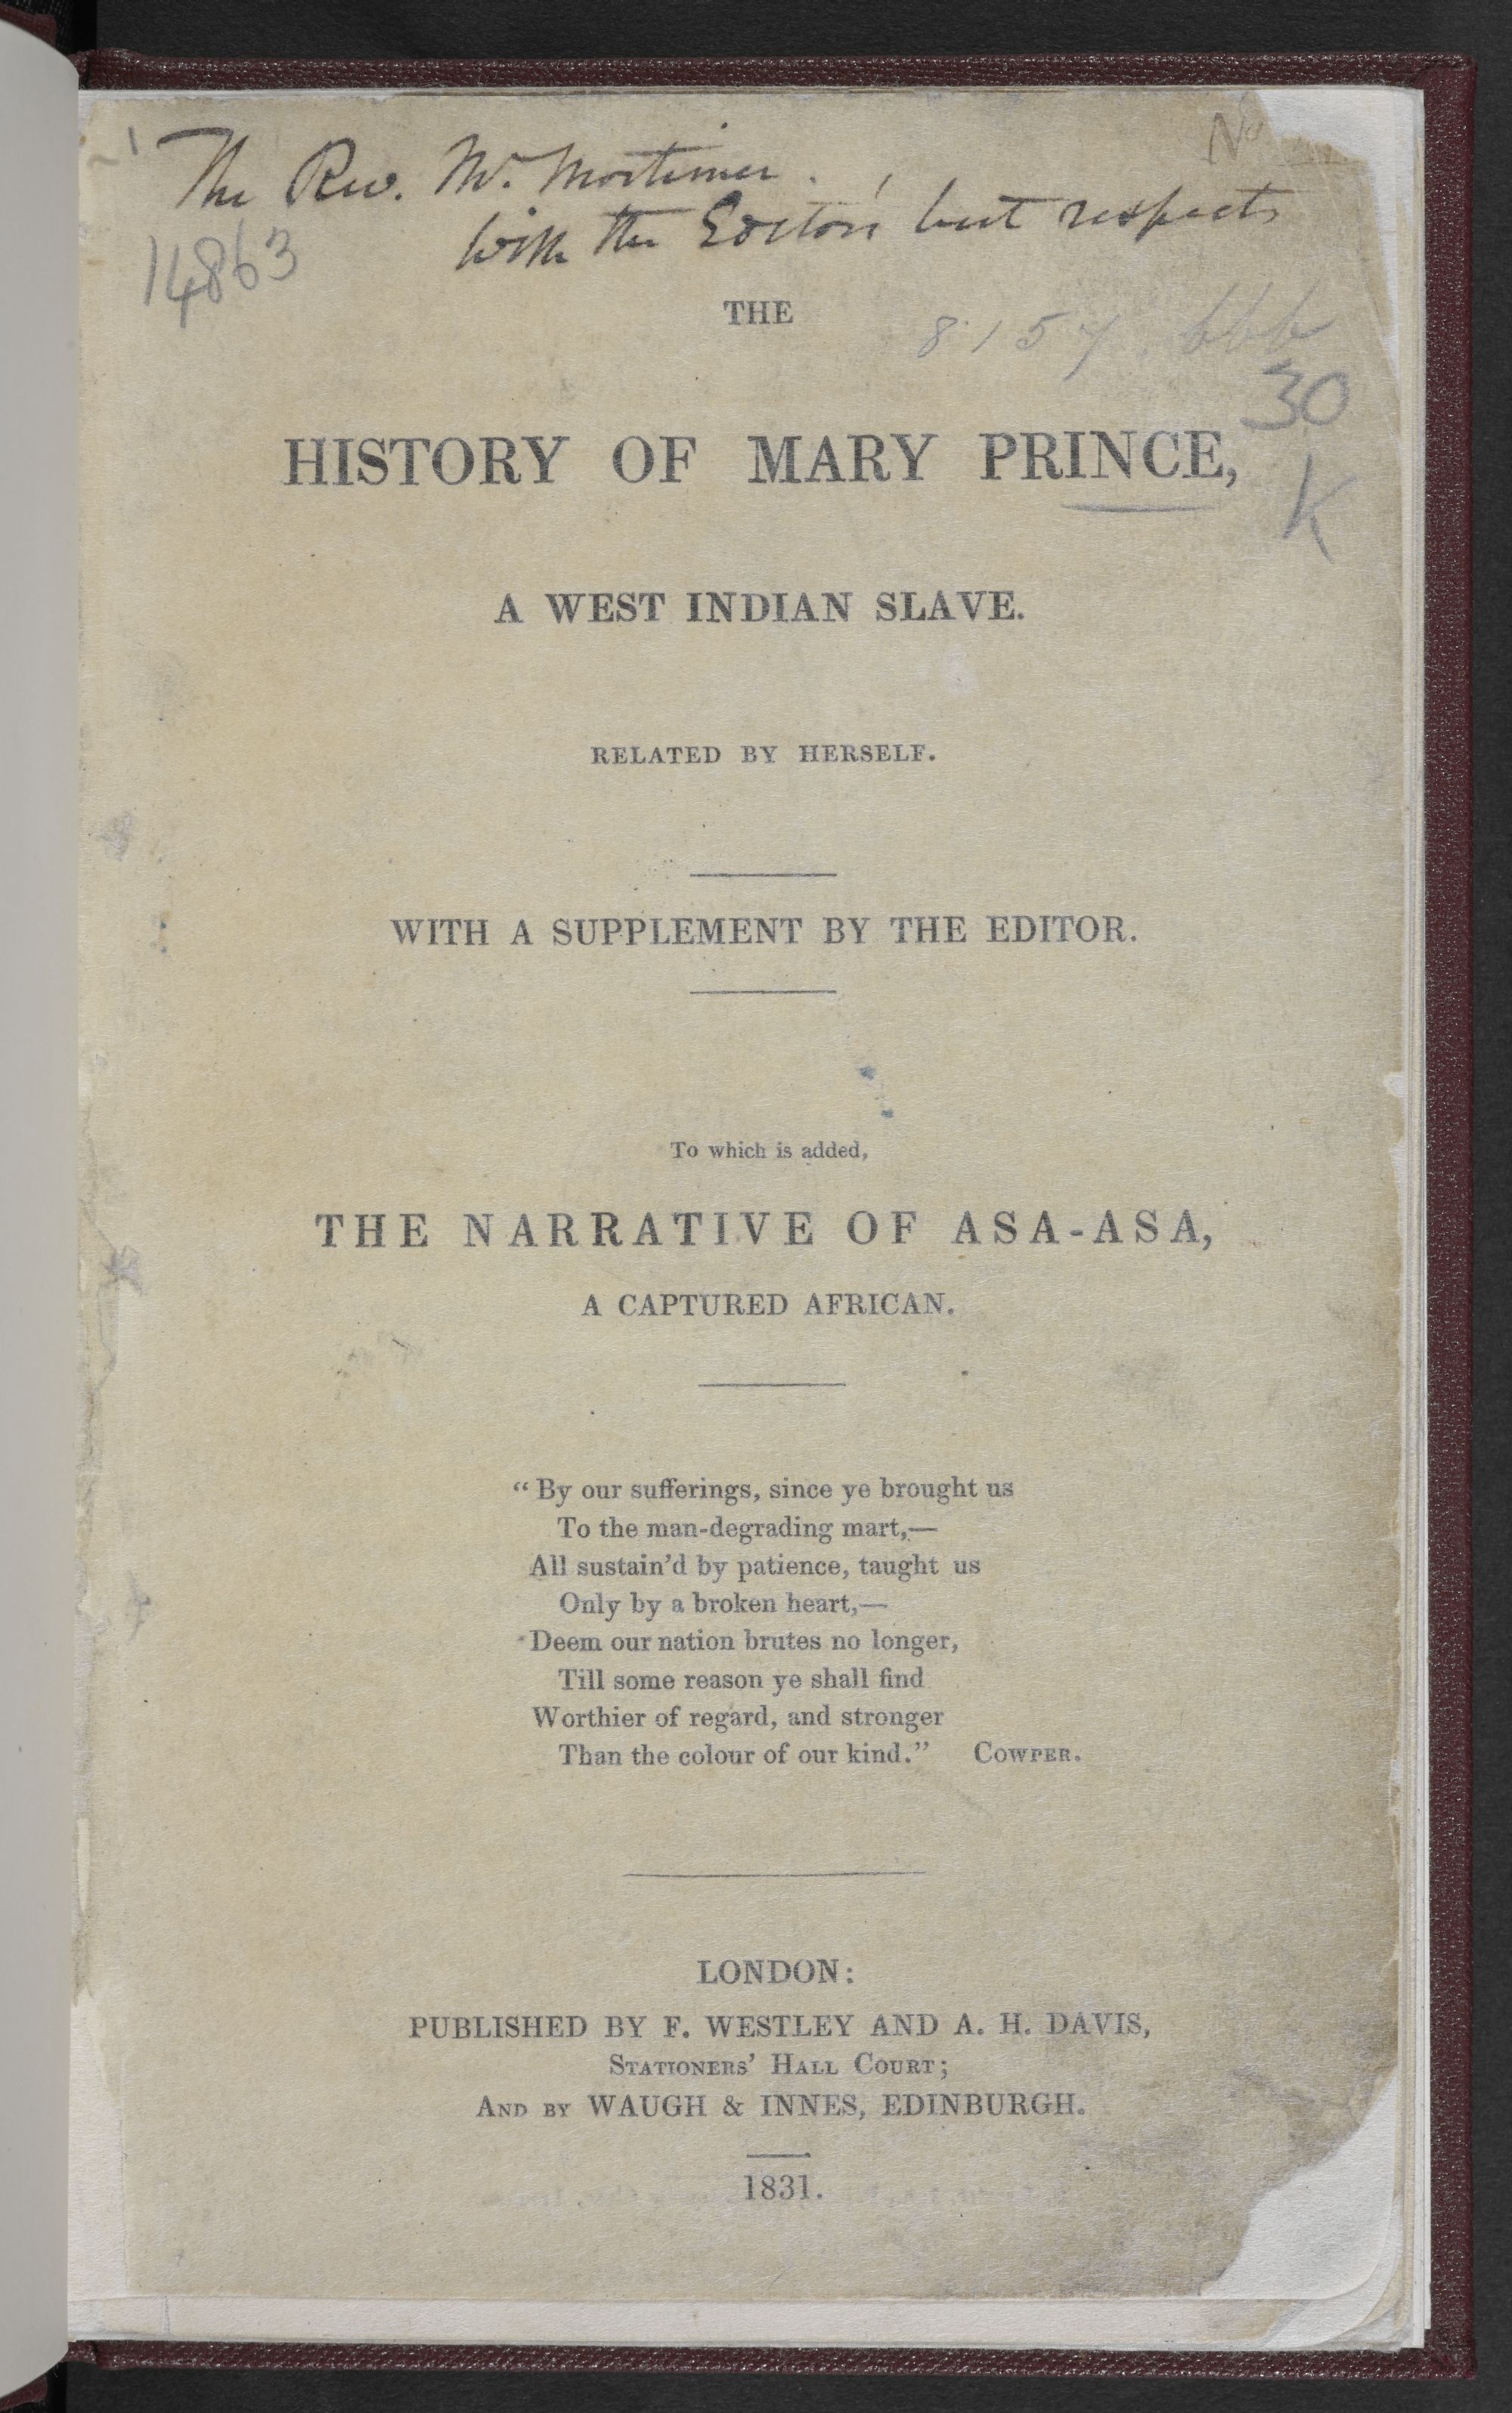 Mary Prince history title page